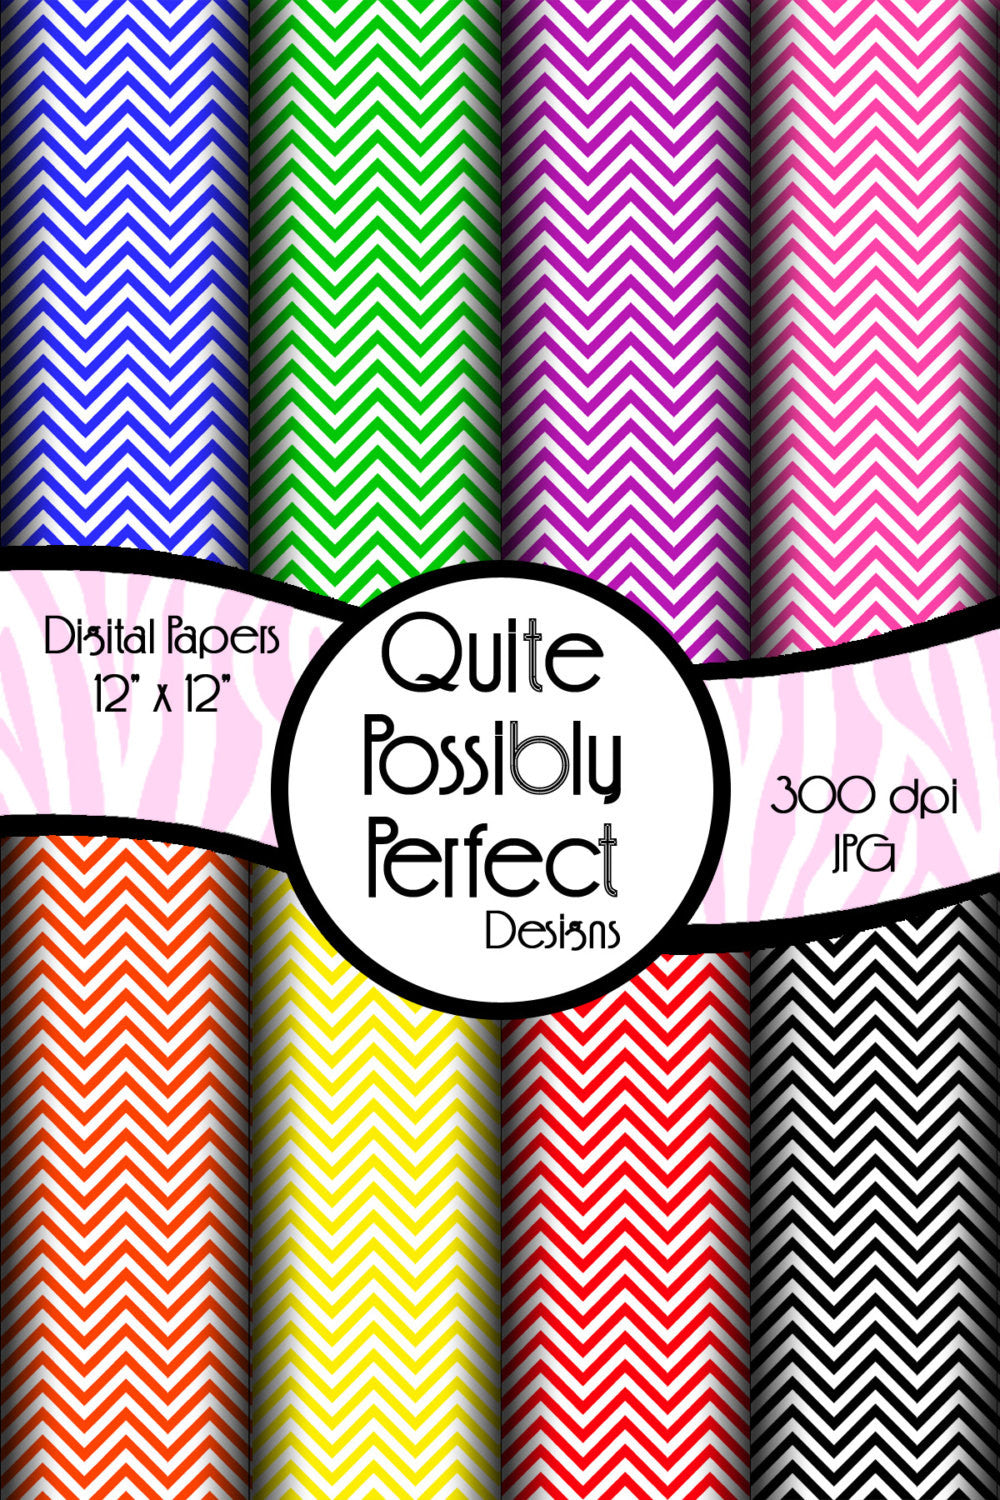 Chevron Digital Paper Pack Instant Download (DGP104) Digital Paper for Scrapbooking, Collage Sheets,Greeting Cards, Bottle Caps